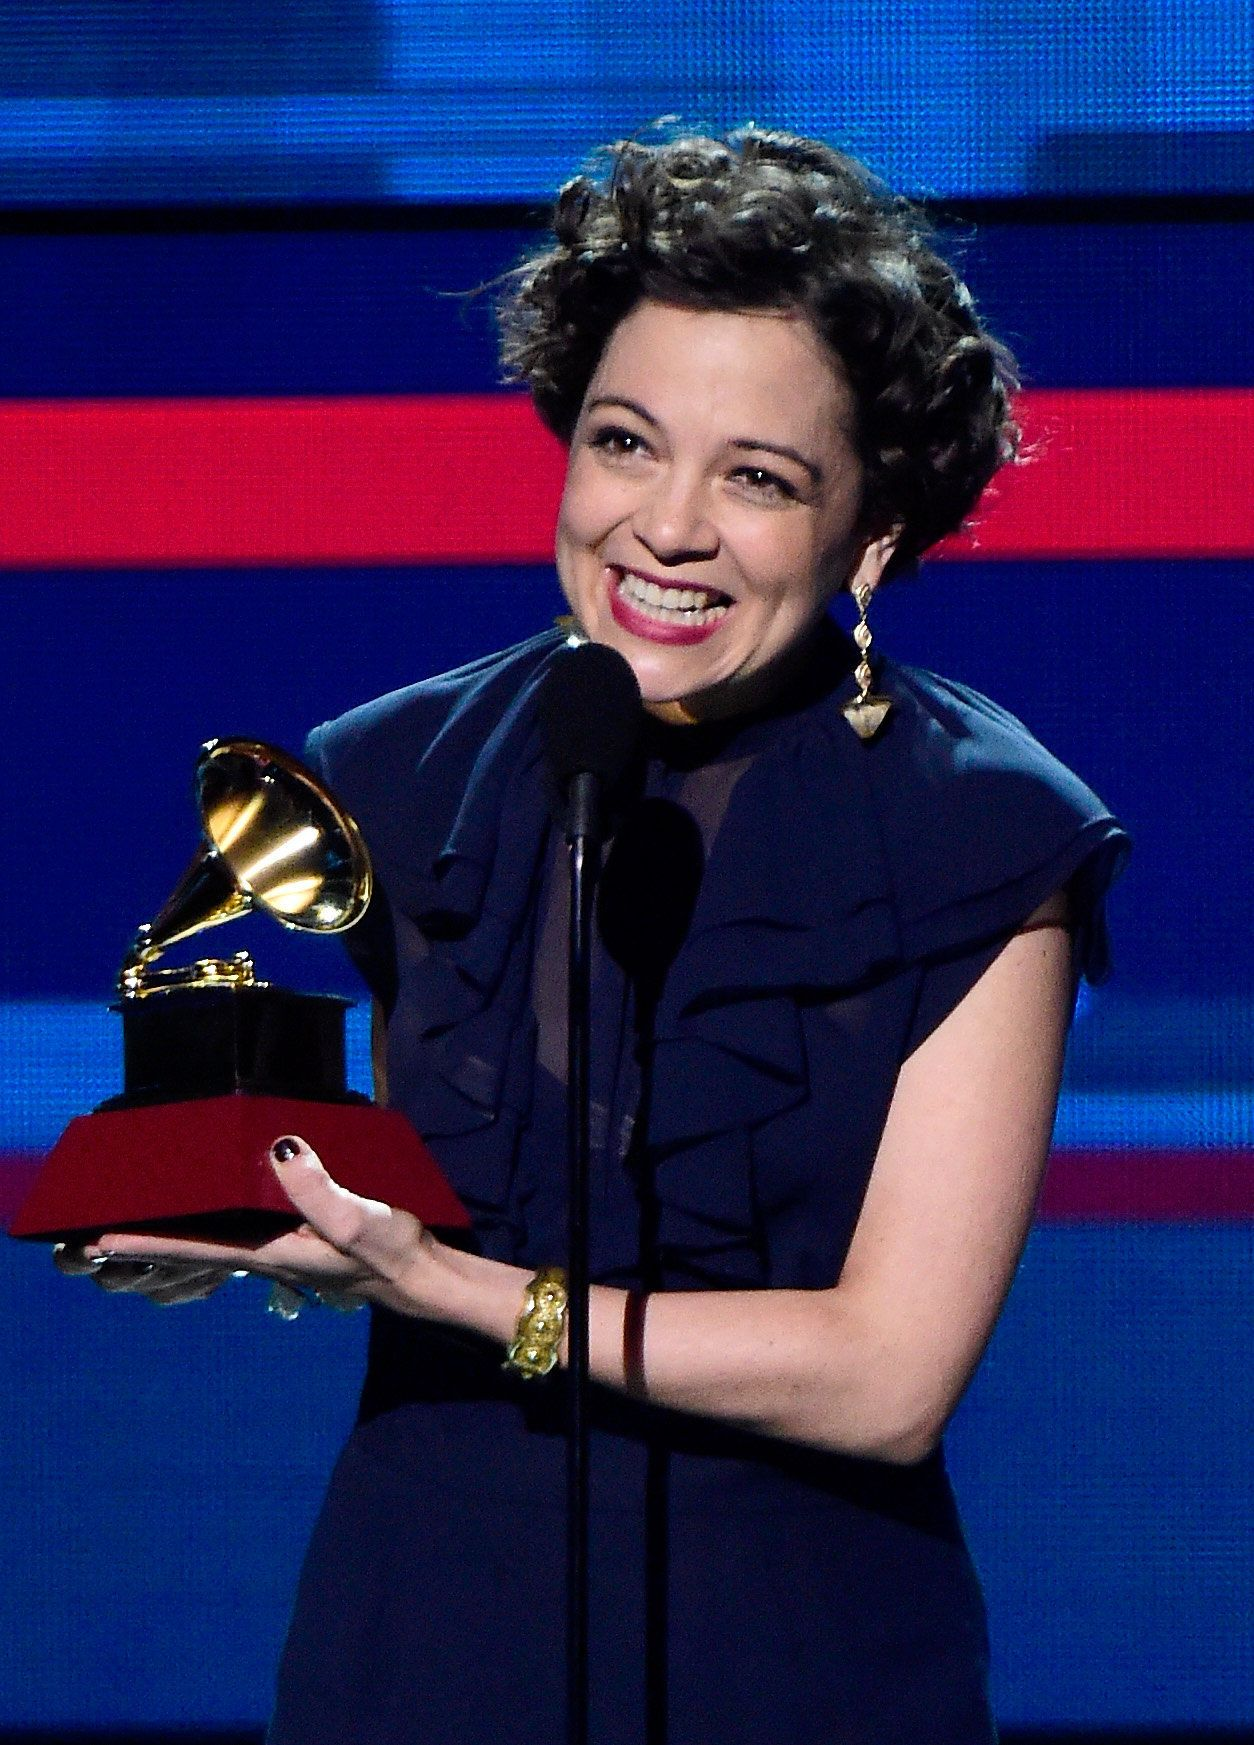 LAS VEGAS, NV - NOVEMBER 19:  Recording artist Natalia Lafourcade accepts the Record of the Year award for 'Hasta la Raiz' onstage during the 16th Latin GRAMMY Awards at the MGM Grand Garden Arena on November 19, 2015 in Las Vegas, Nevada.  (Photo by Frazer Harrison/Getty Images for LARAS)